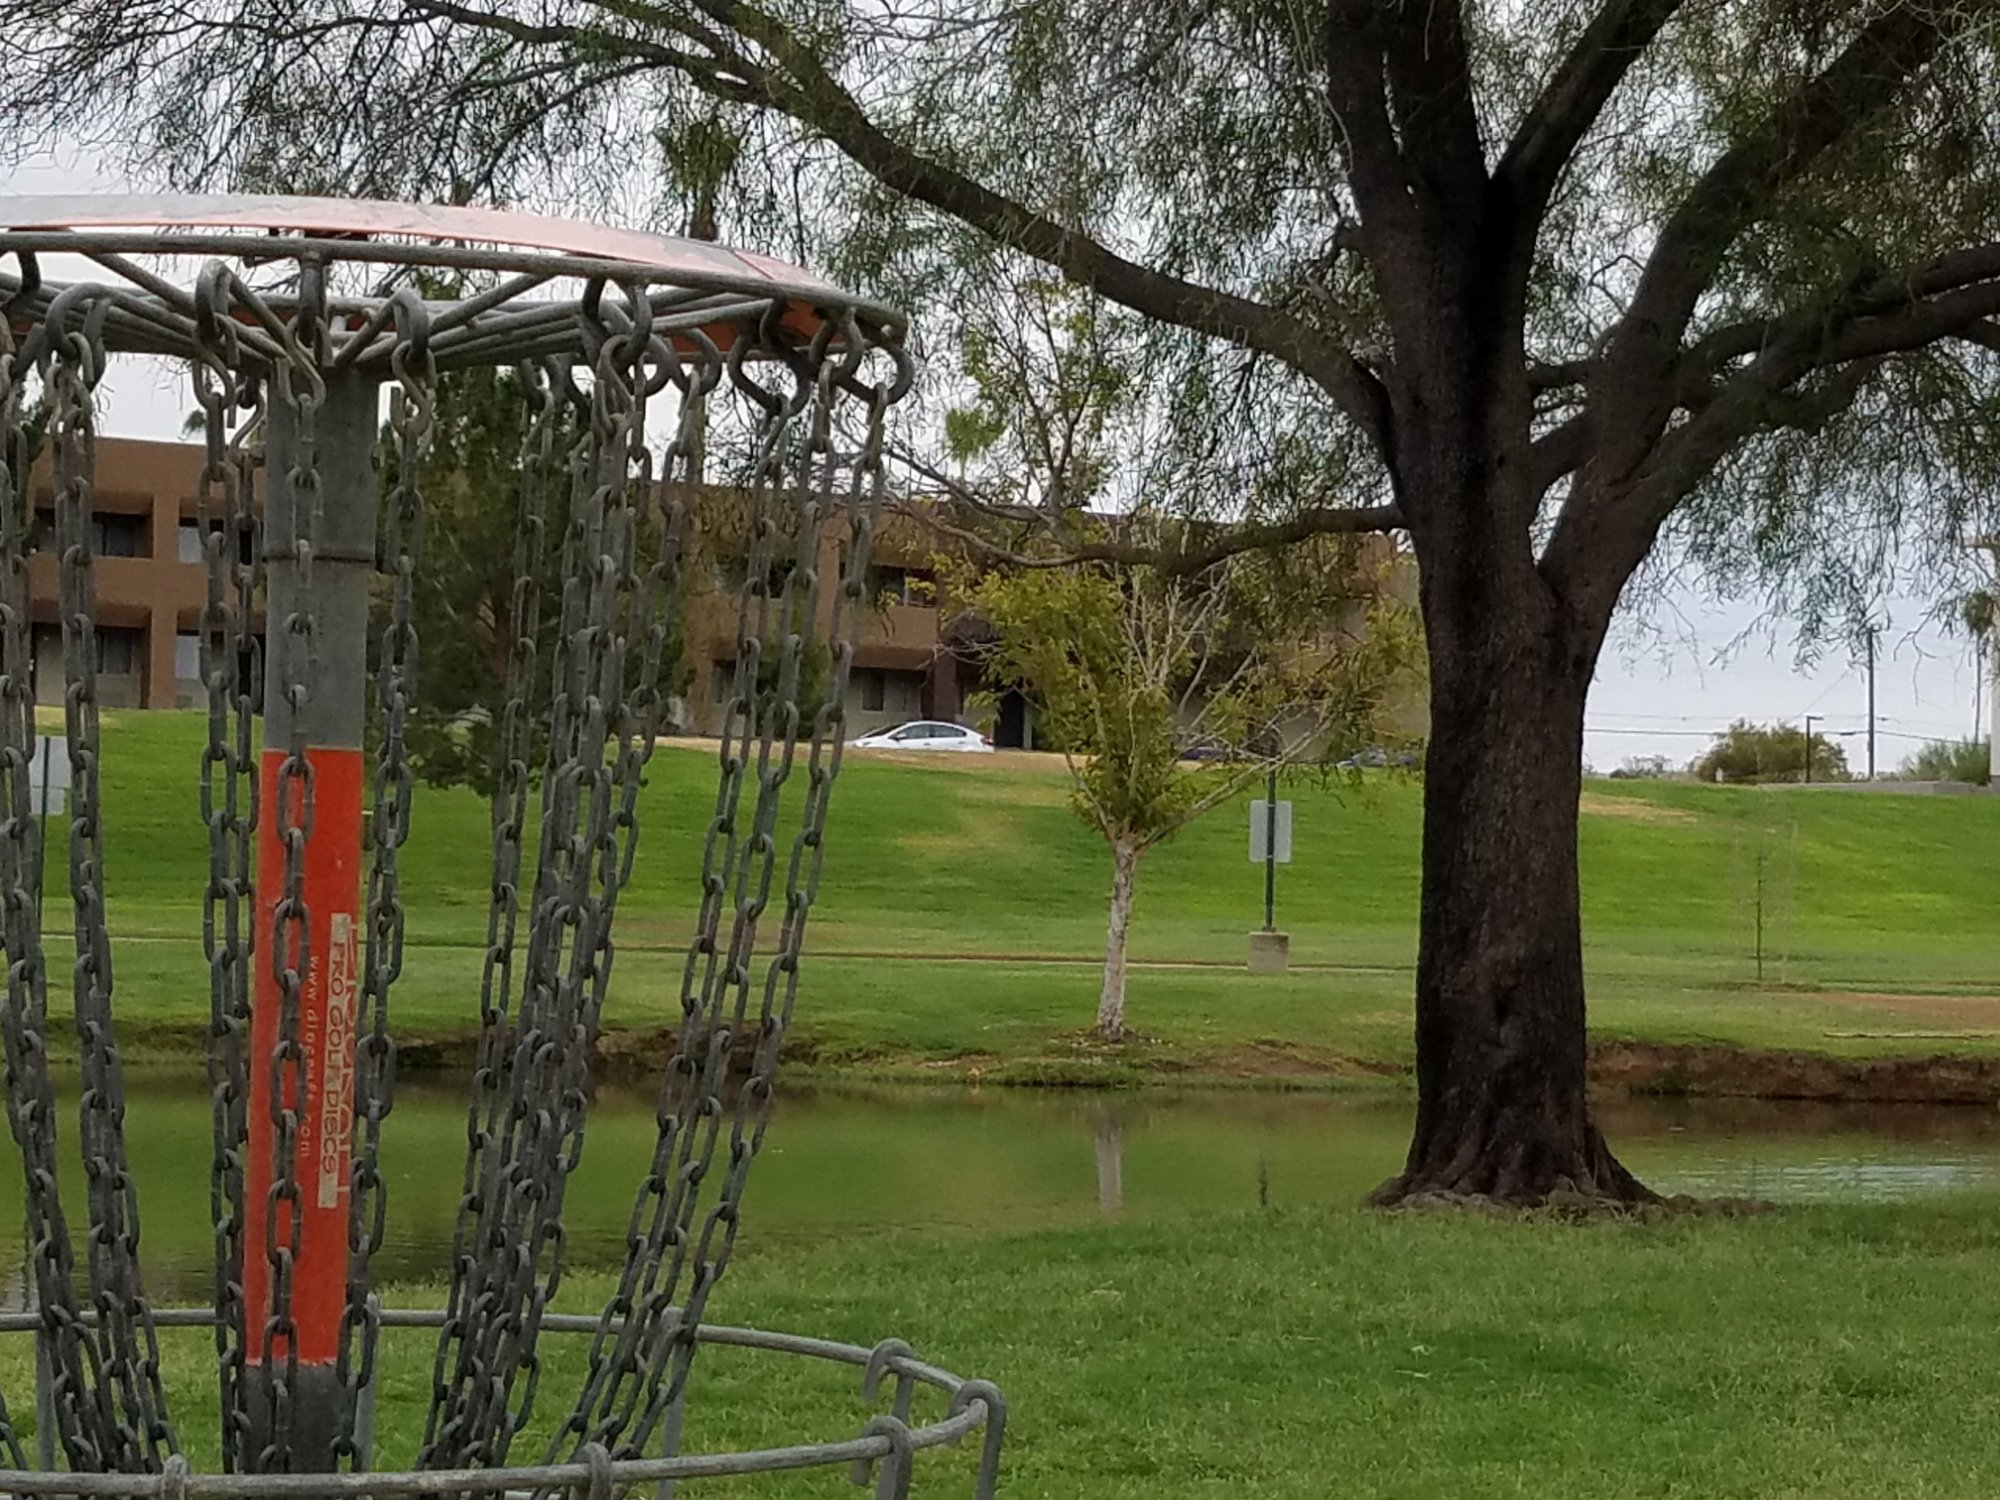 Vista del Camino Park in Scottsdale.  Home of the Shelly Sharpe Disc Golf course.